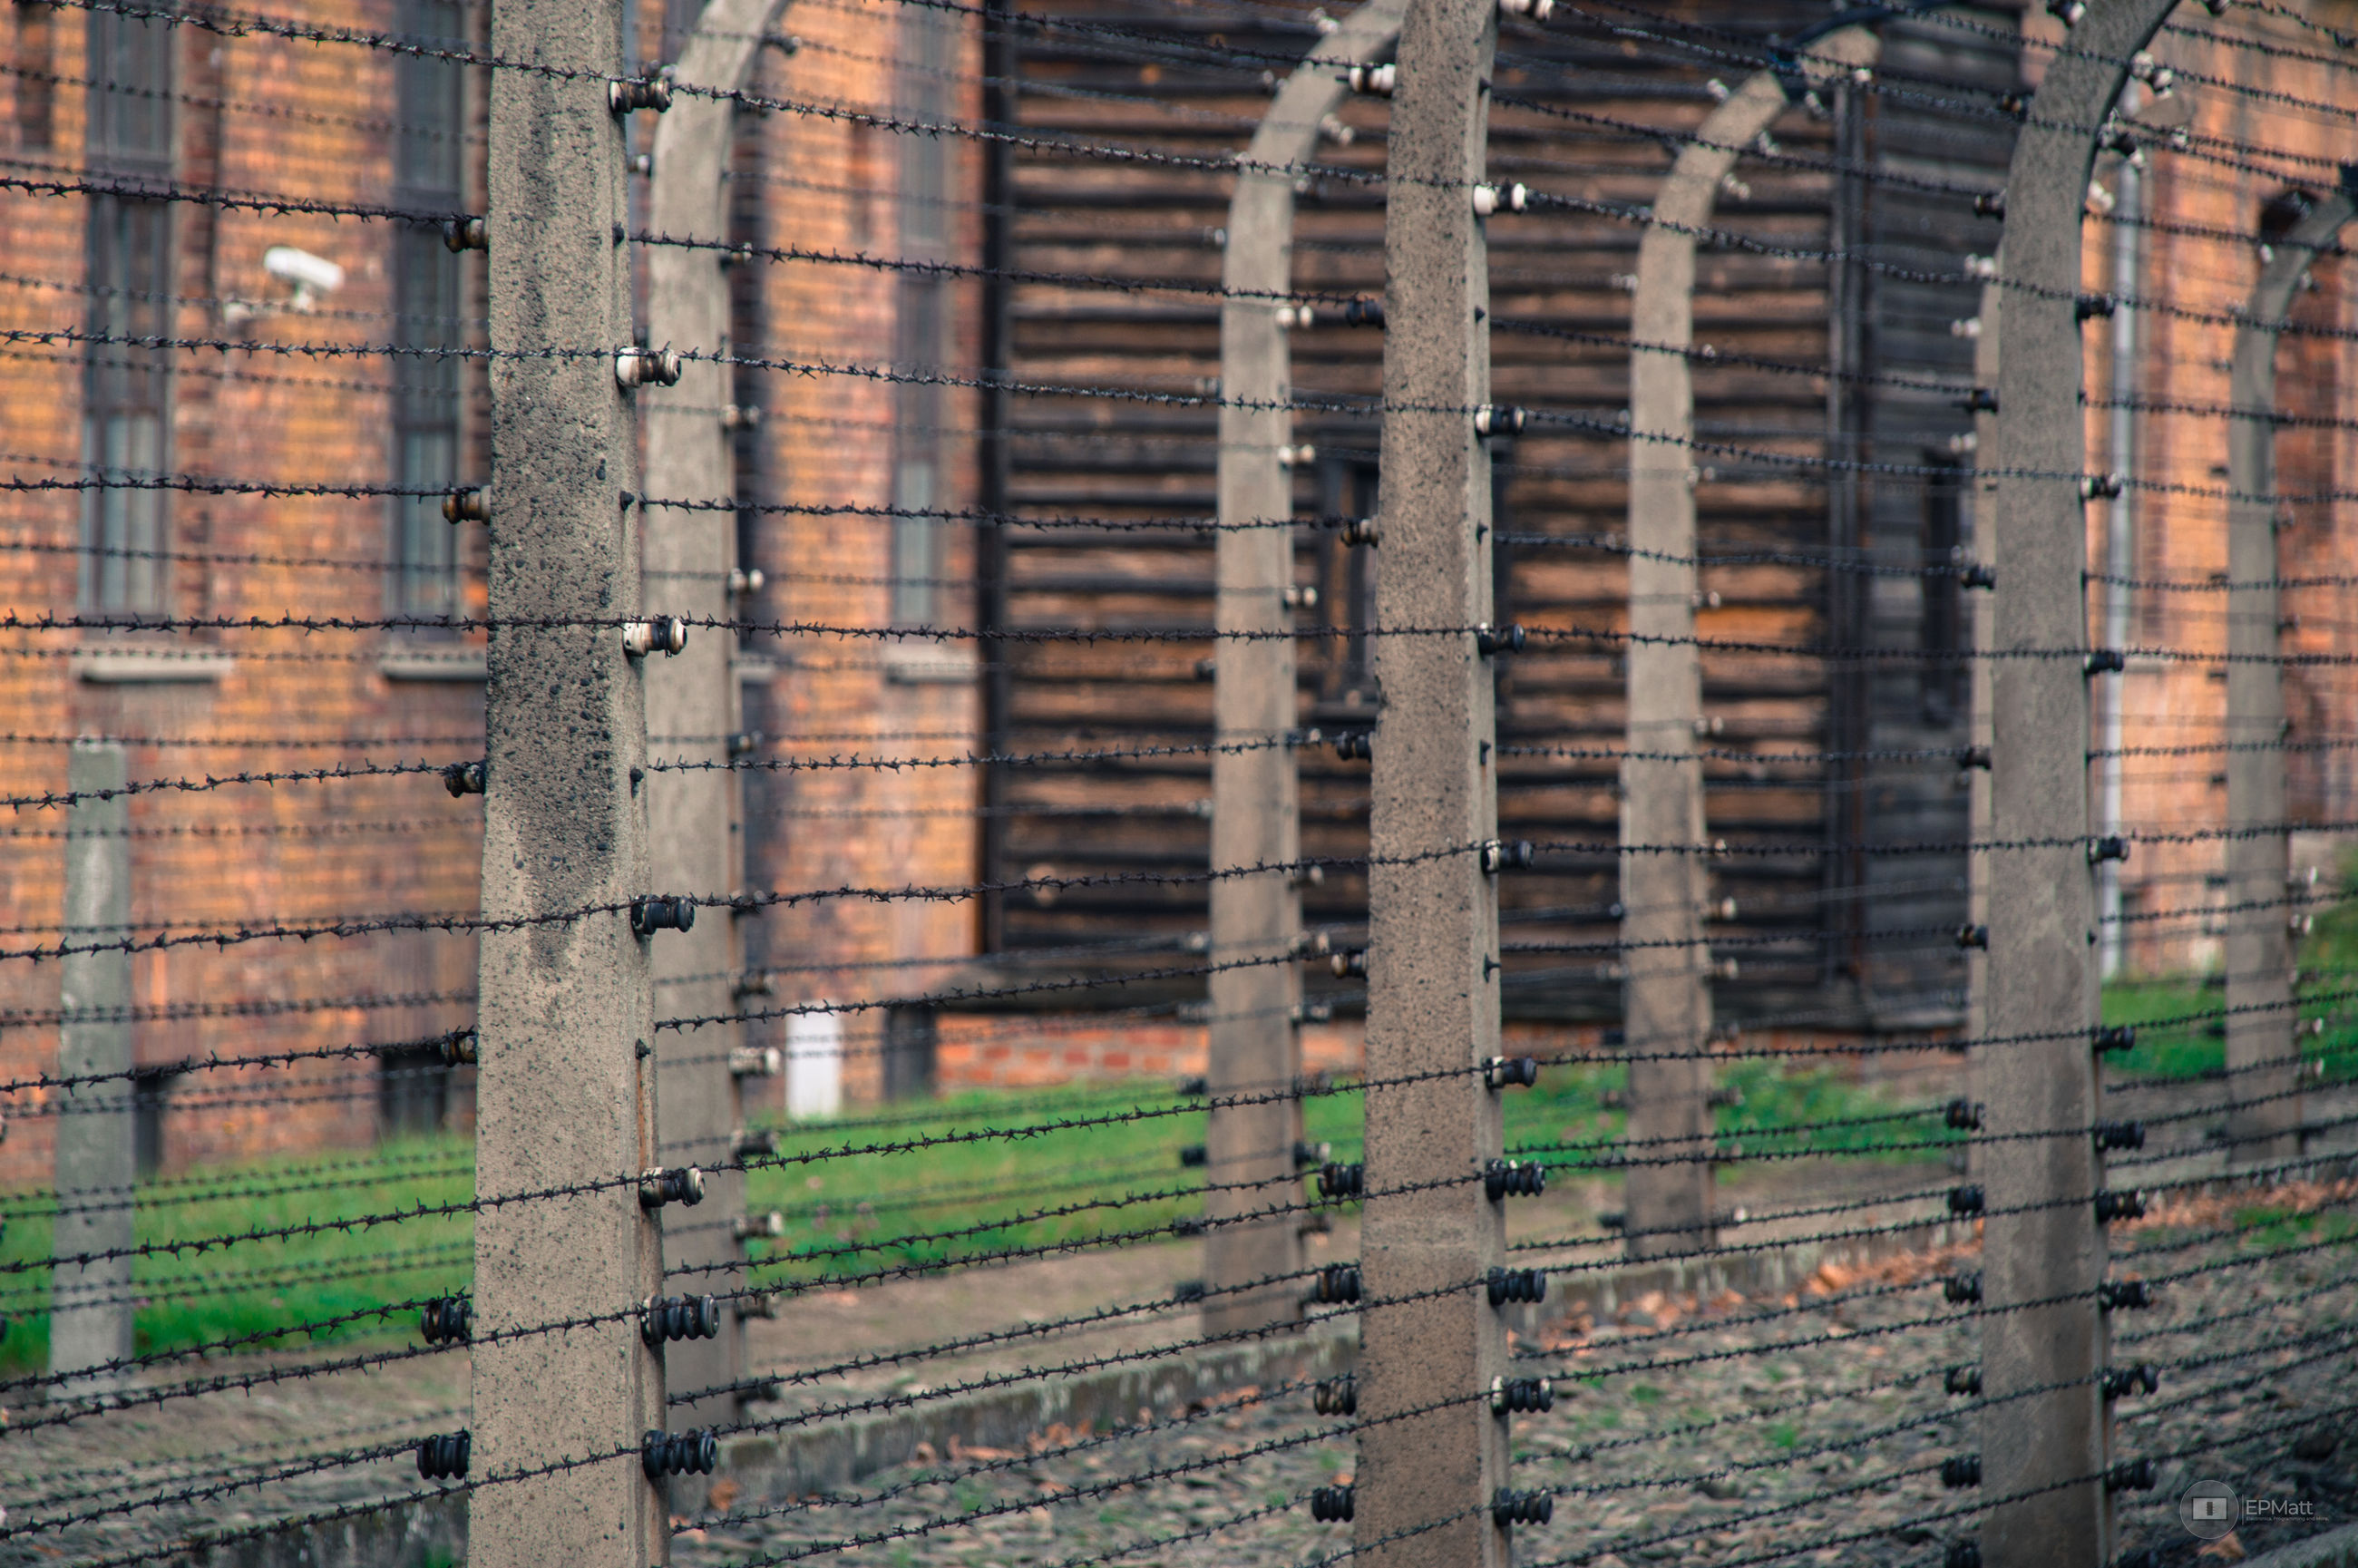 architecture, no people, building, industry, day, built structure, metal, outdoors, fence, brick wall, brick, full frame, selective focus, building exterior, protection, boundary, barrier, backgrounds, wall, safety